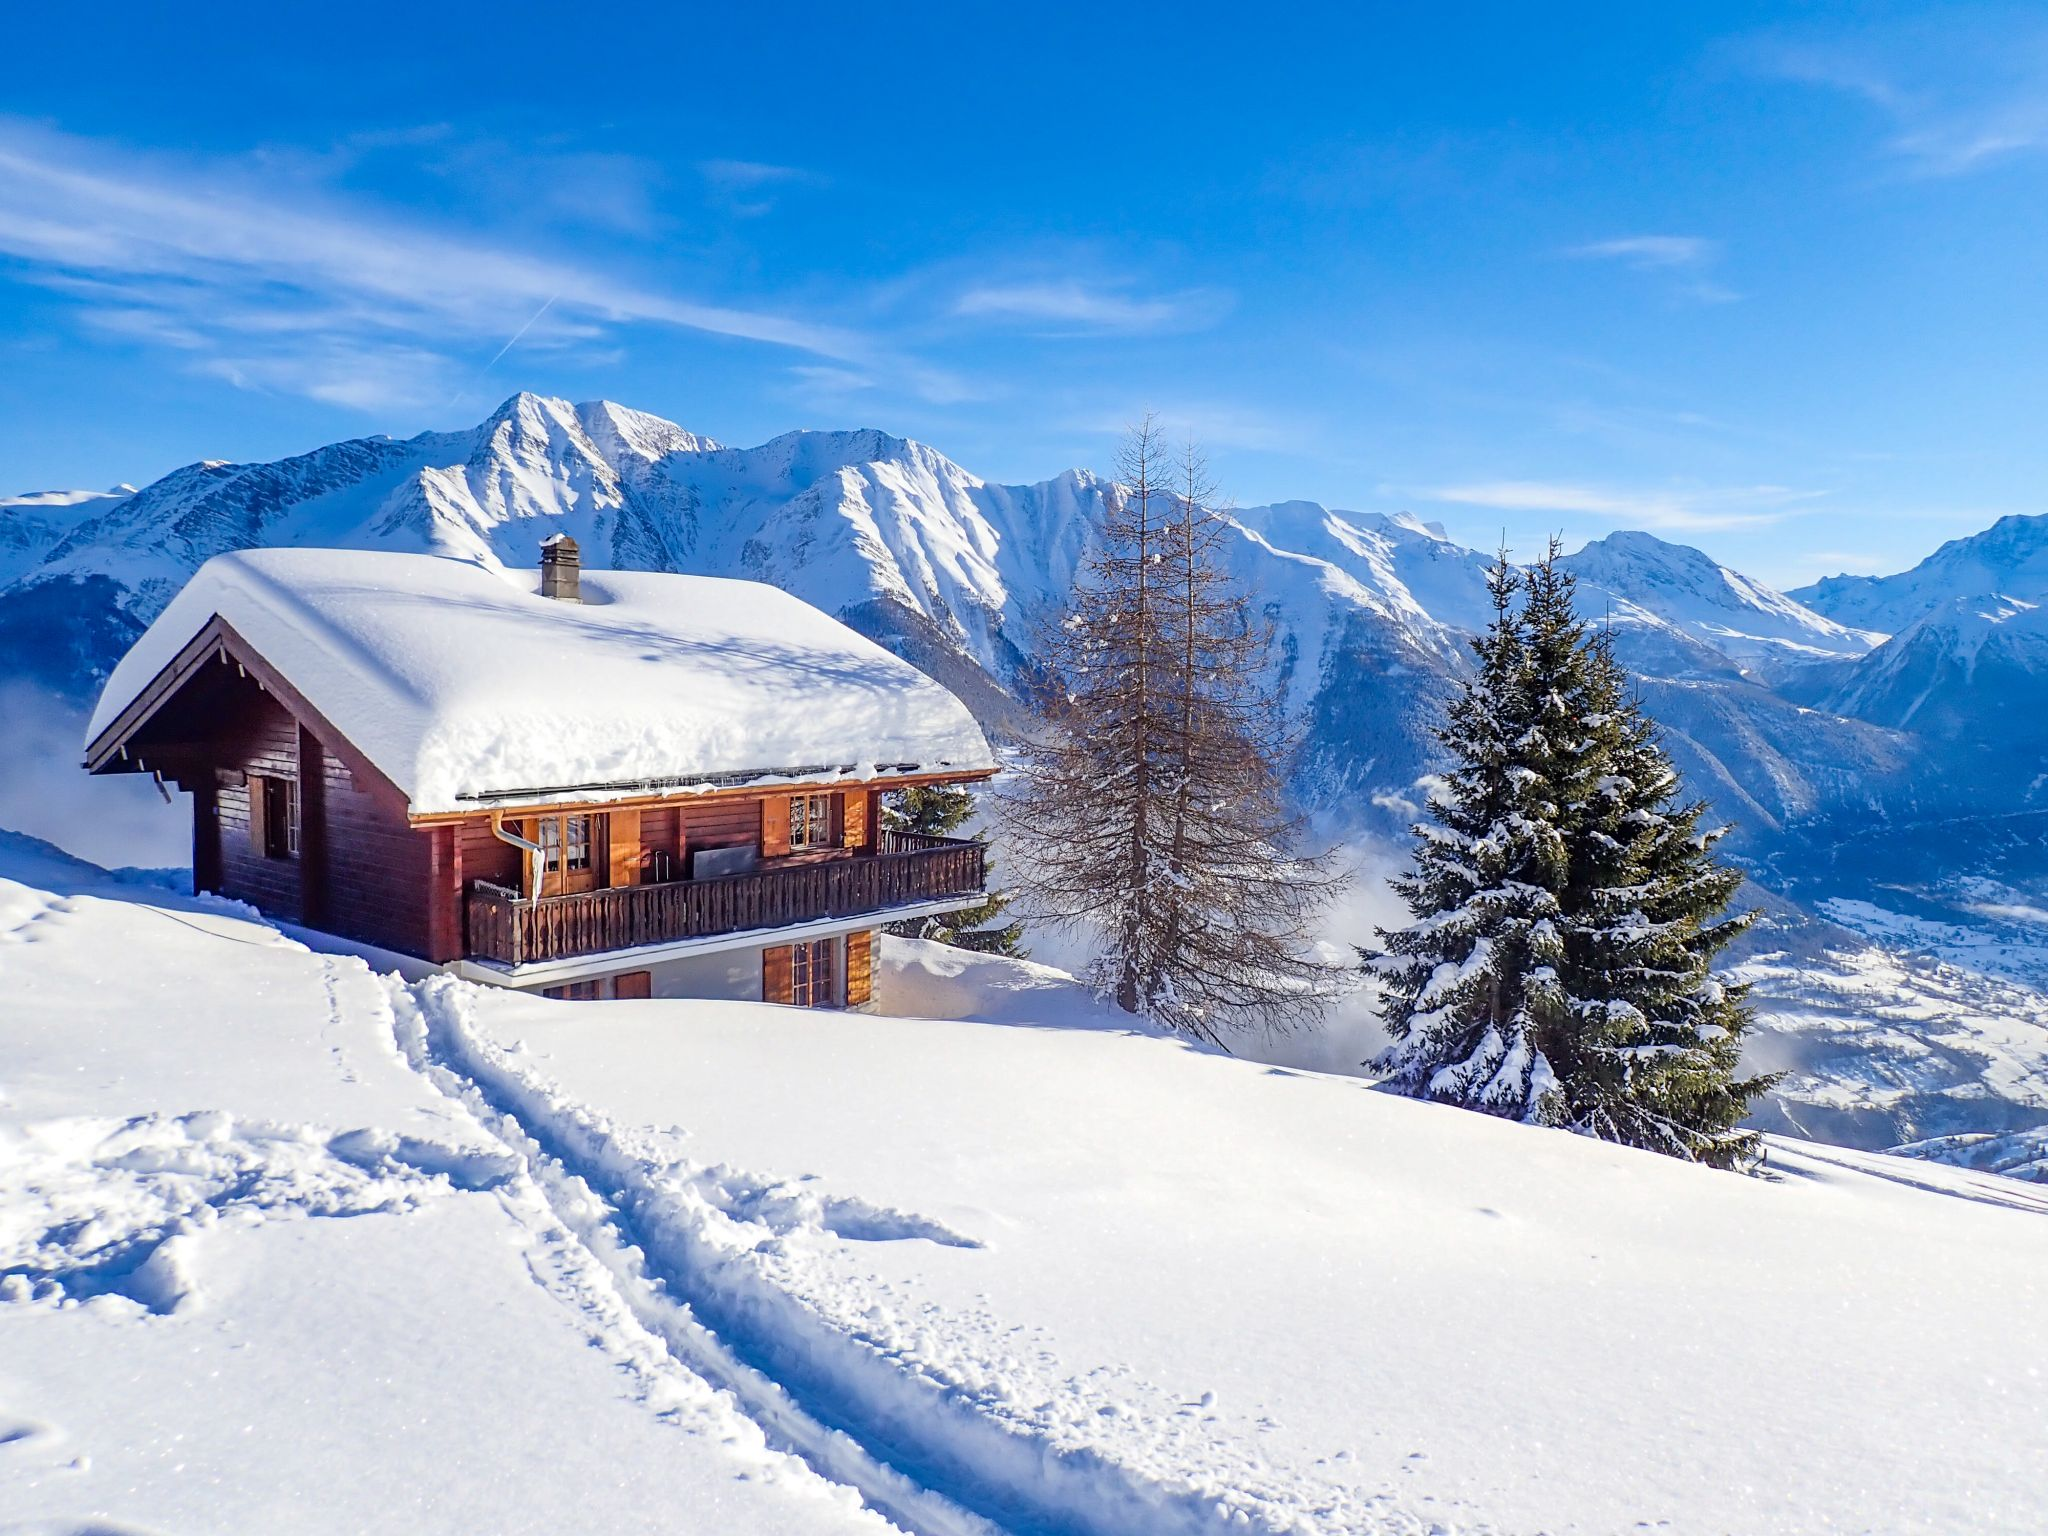 Snow Cabin at Riederalp, Switzerland